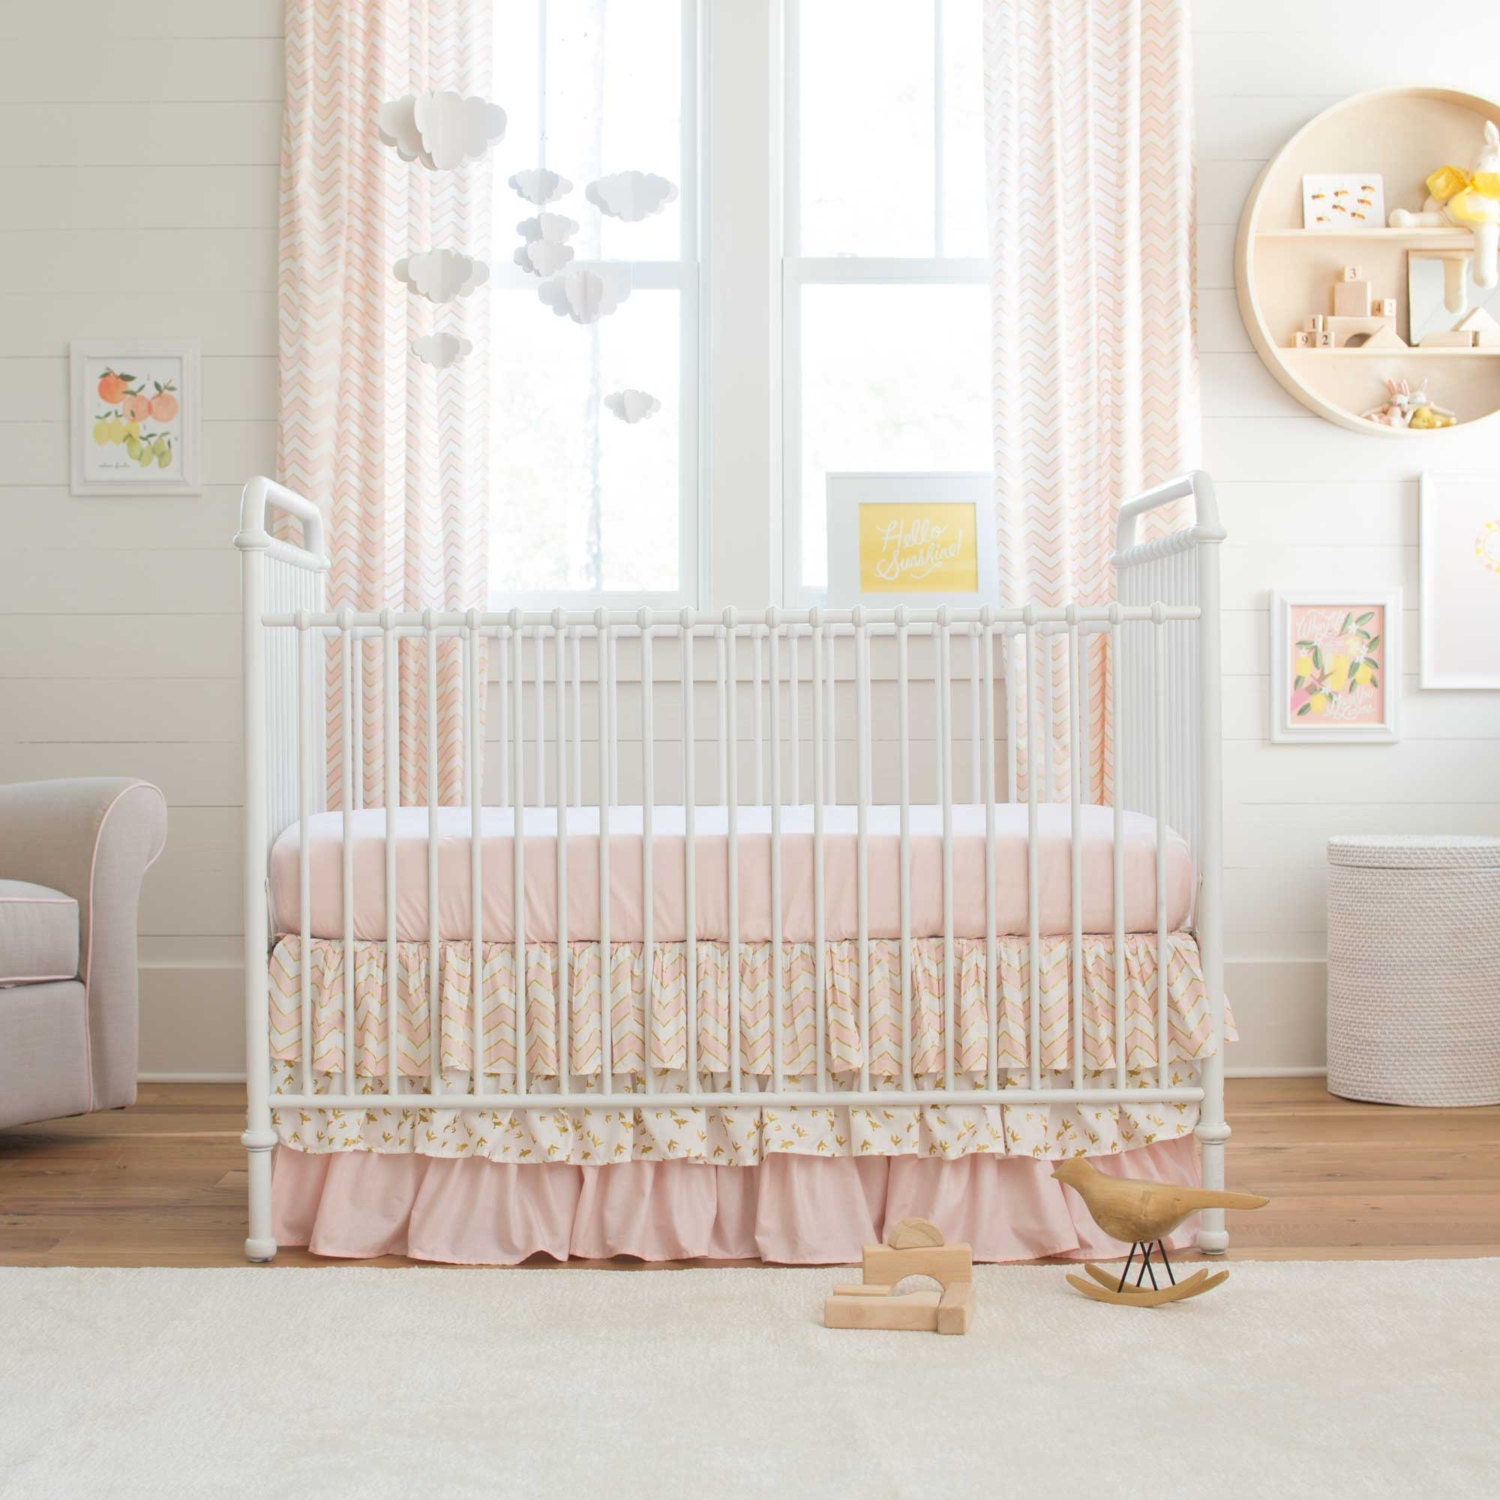 Girl Baby Crib Bedding Pale Pink And Gold Chevron 2 Piece